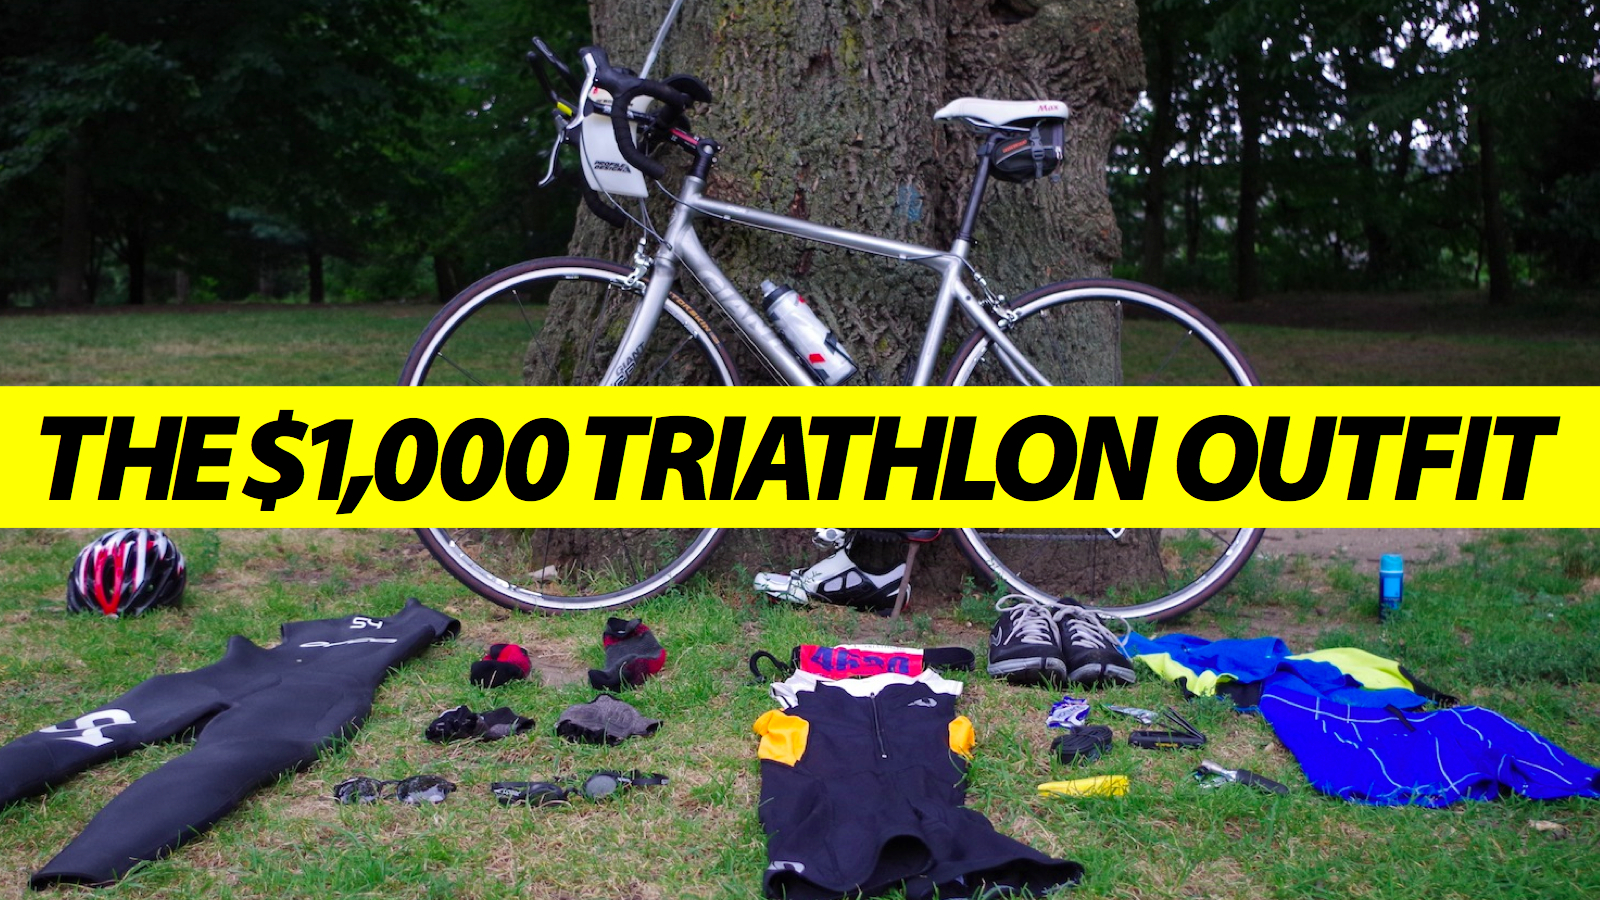 Click here to read The Ultimate Triathlon Outfit For Under $1,000